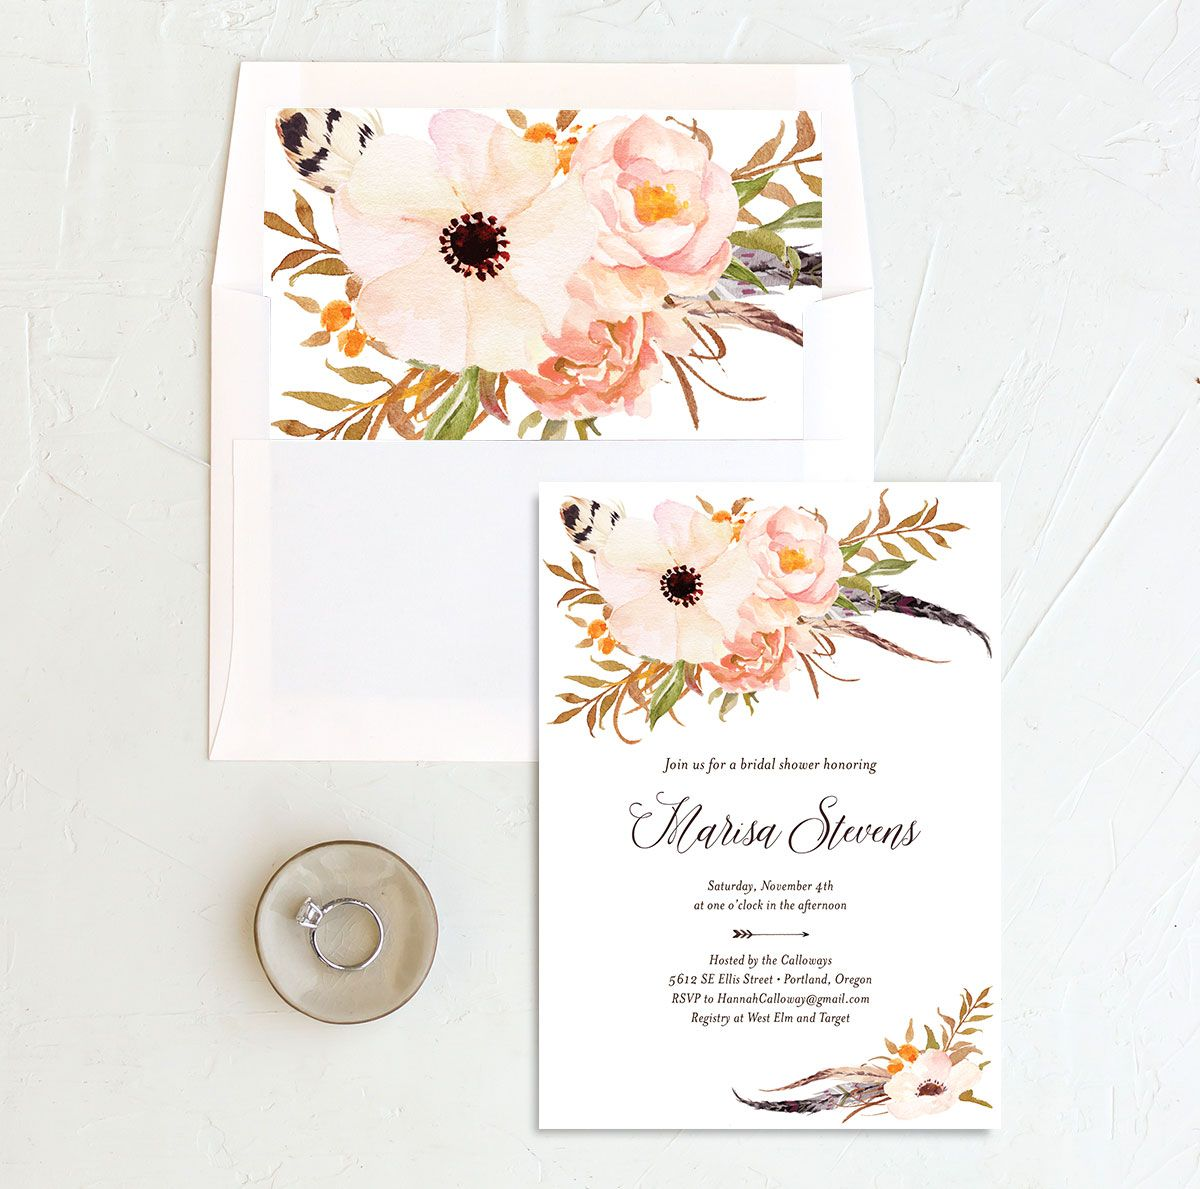 Bohemian Floral Bridal Shower Invitation and Envelope Liner peach